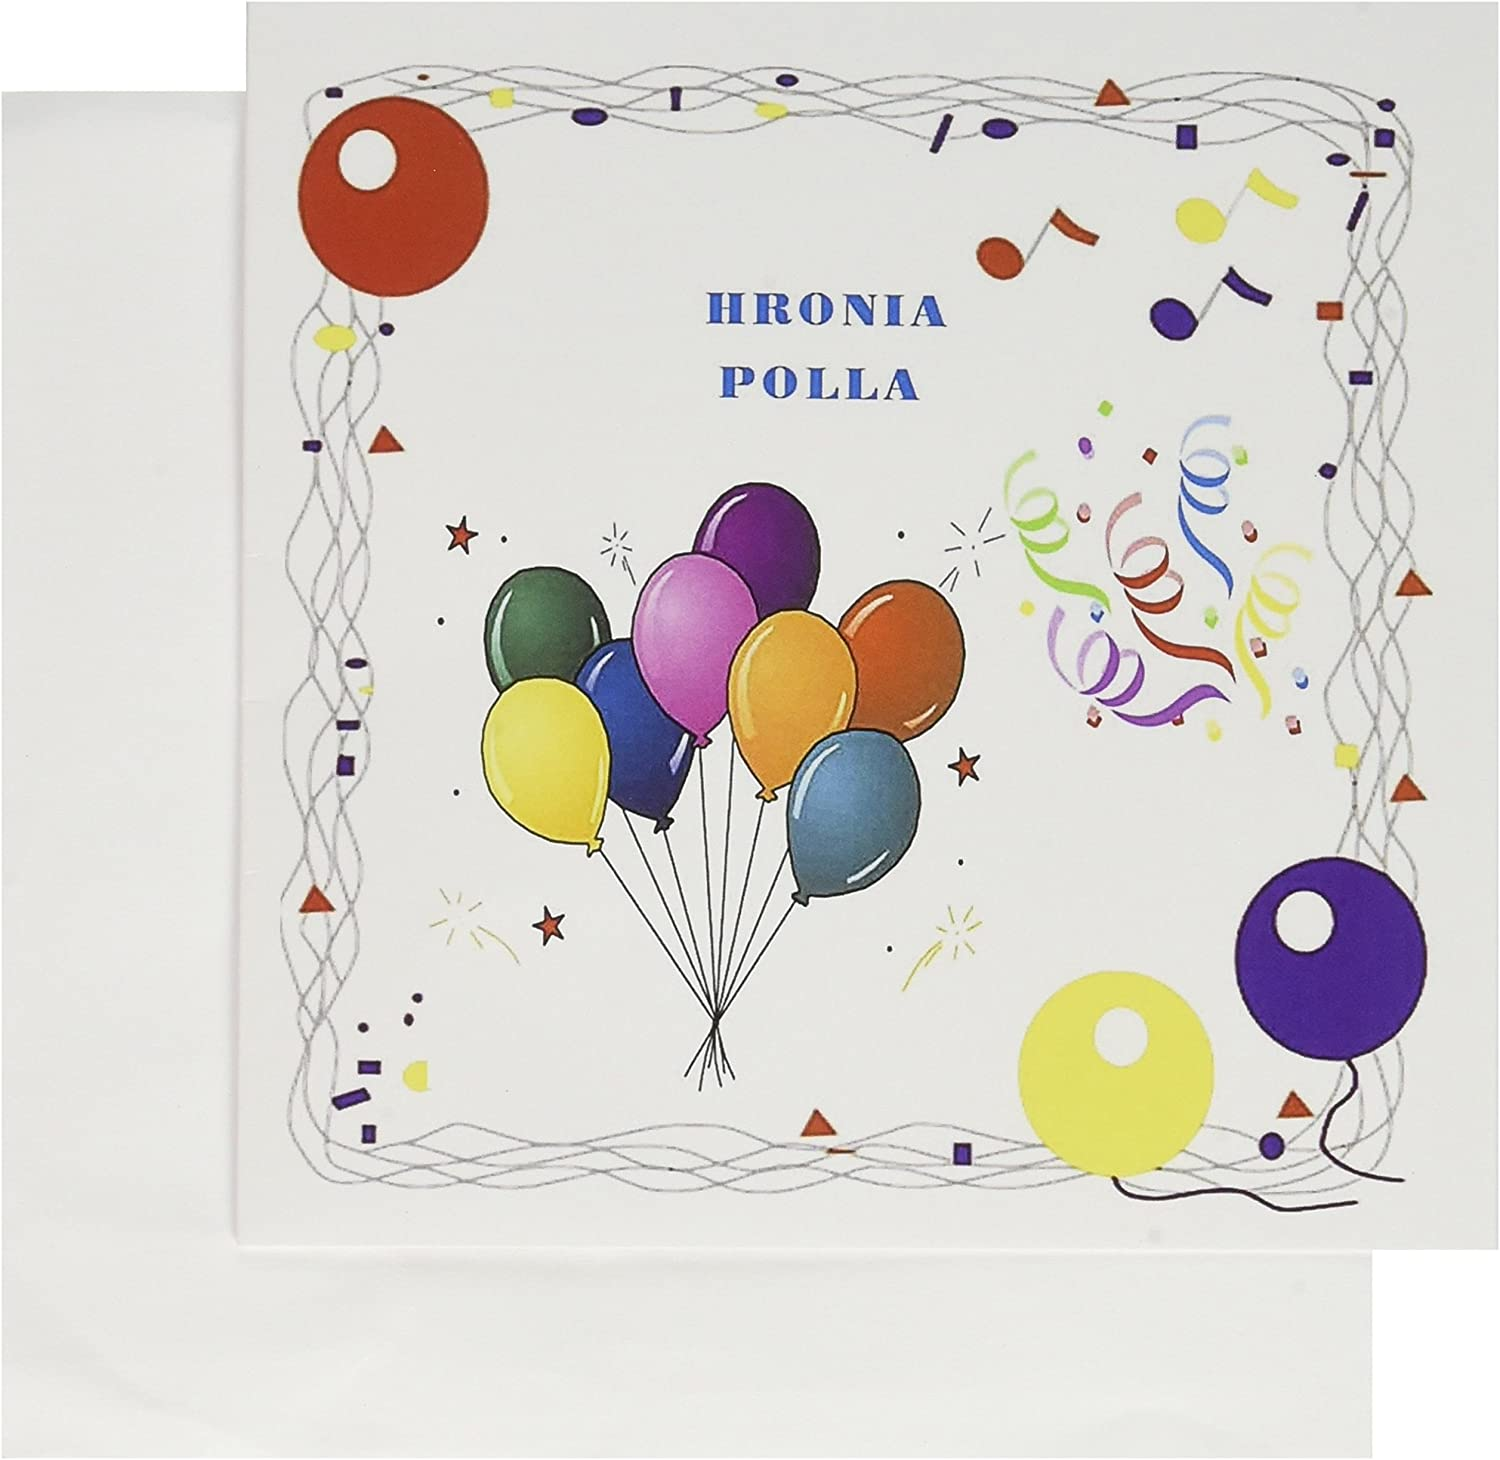 Amazon Com Image Of Happy Birthday In Greek With Balloons Confetti Greeting Card 6 X 6 Inches Single Gc 223455 5 Office Products